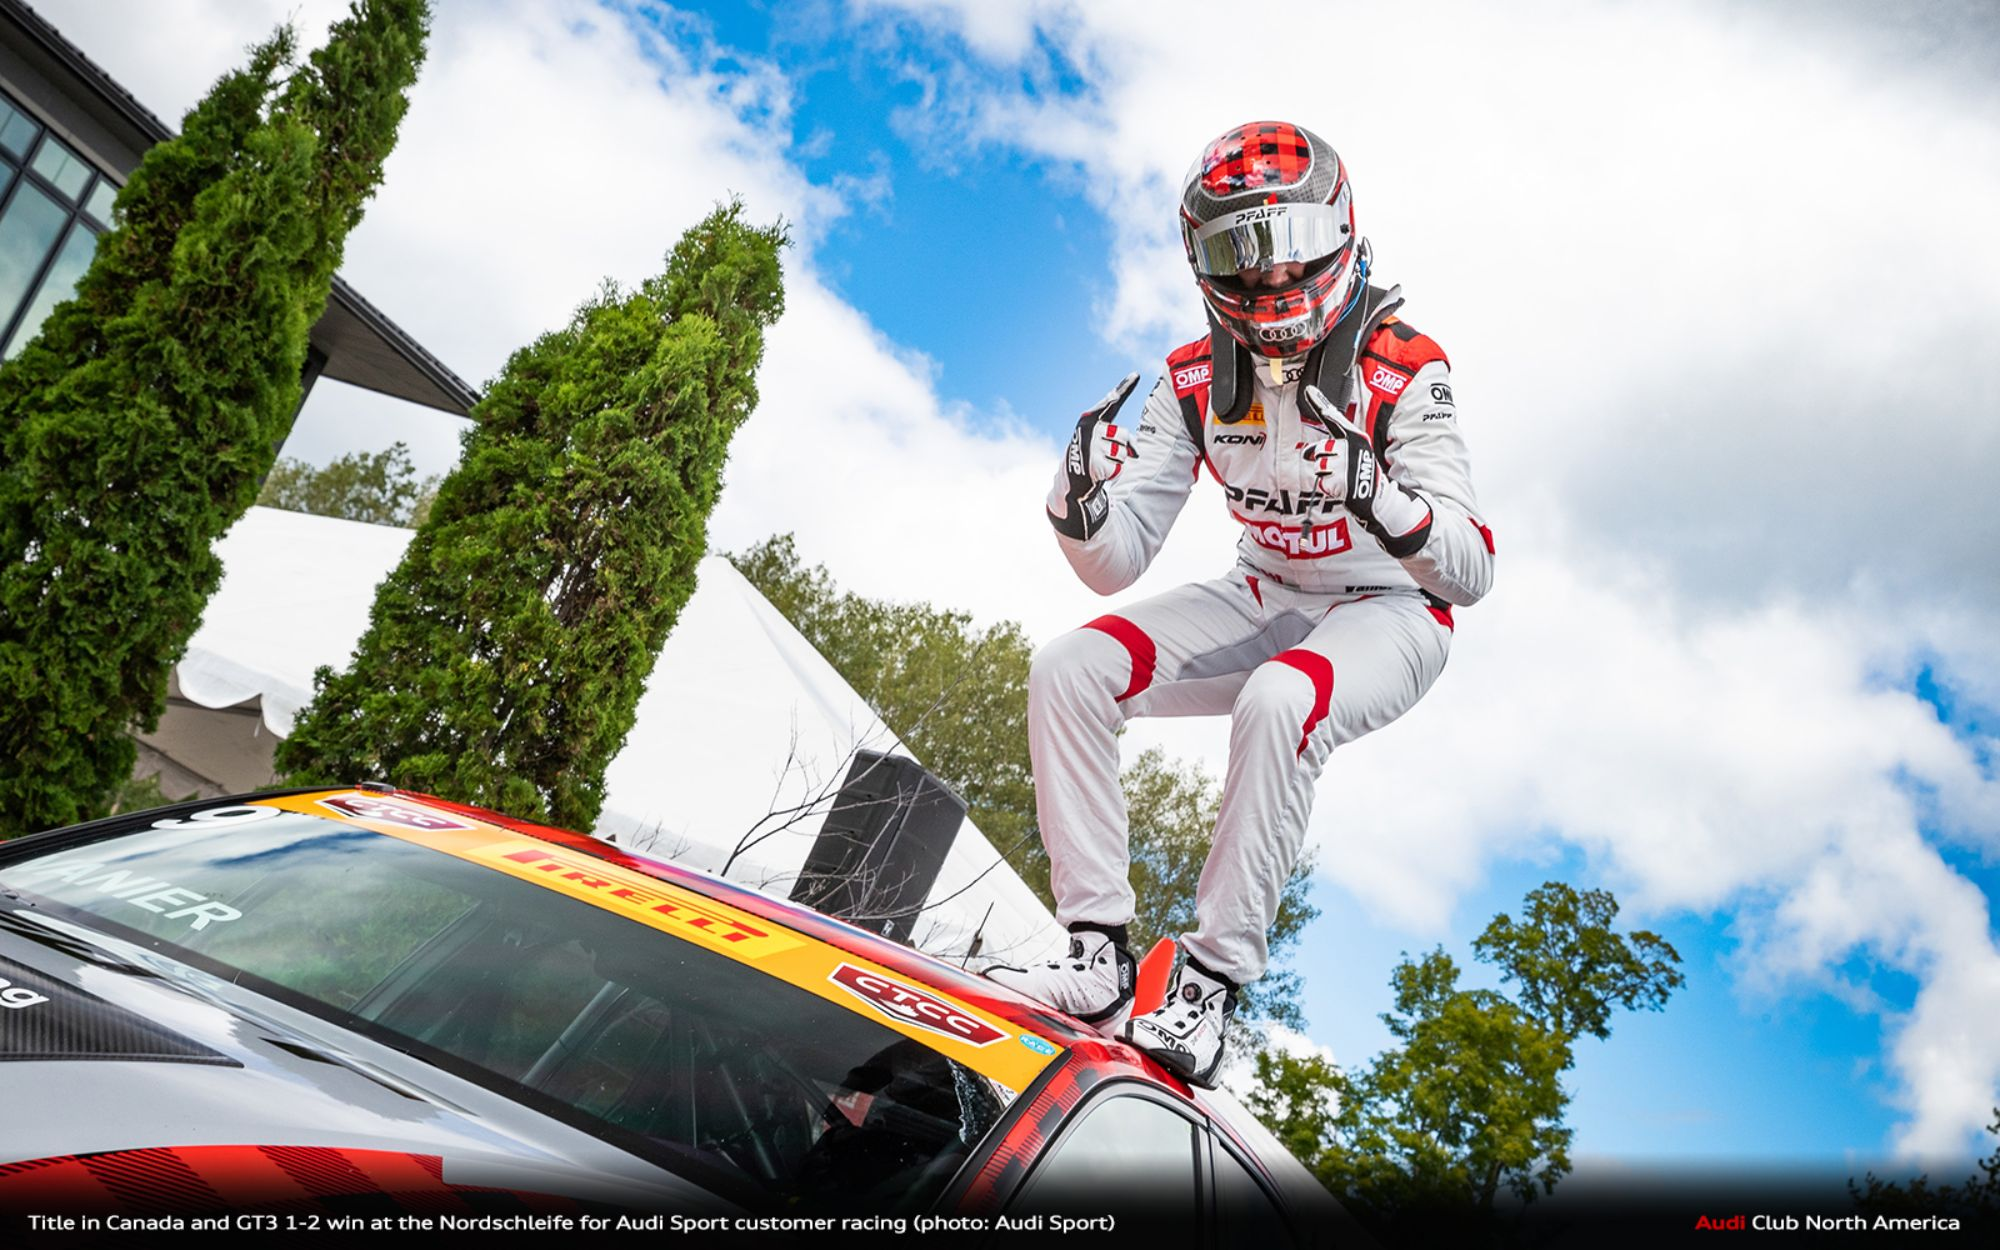 Title in Canada and GT3 1-2 win at the Nordschleife for Audi Sport customer racing